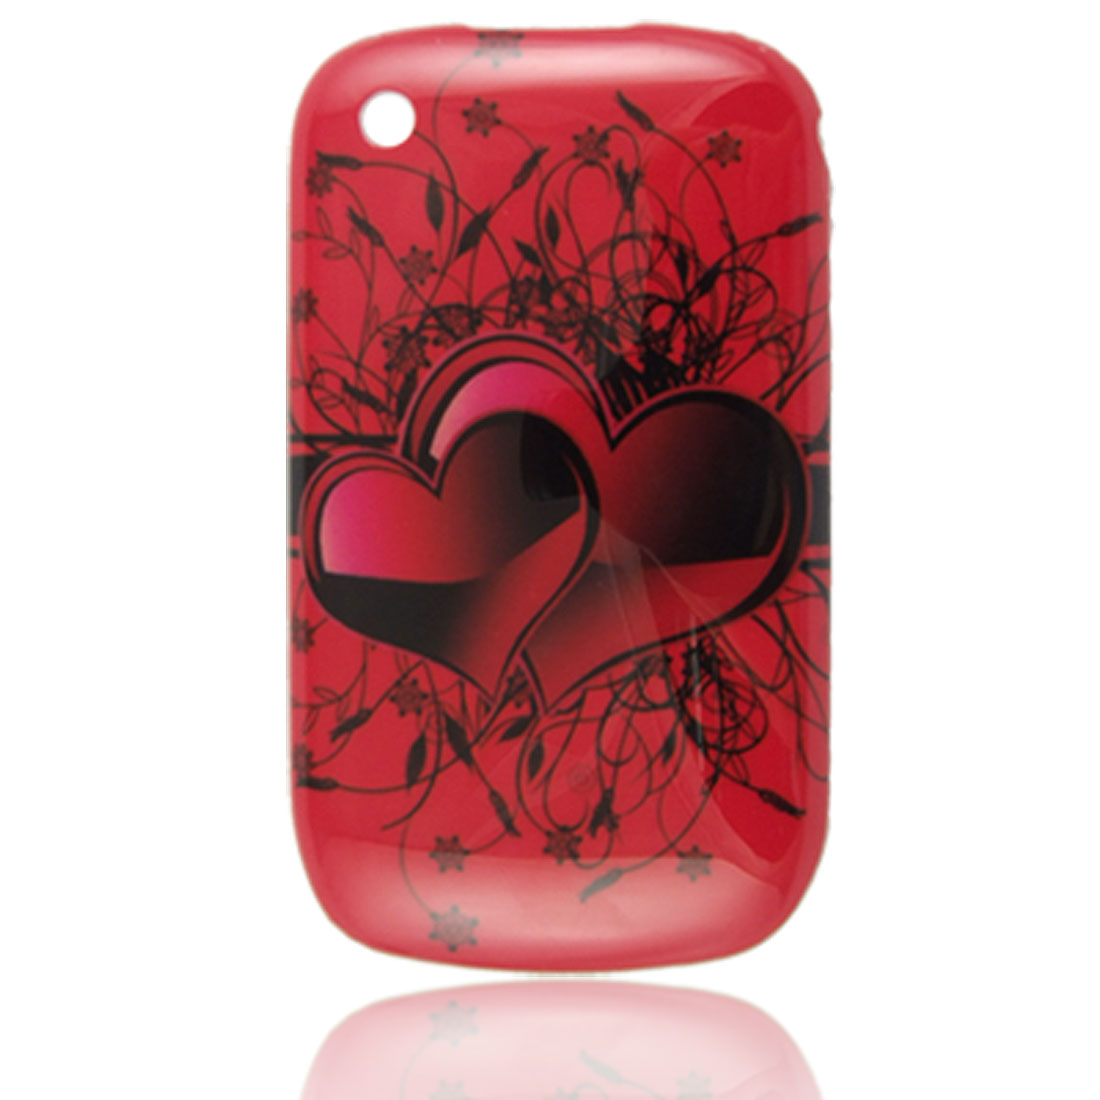 IMD Hard Plastic Black Red Back Case for Blackberry 8520